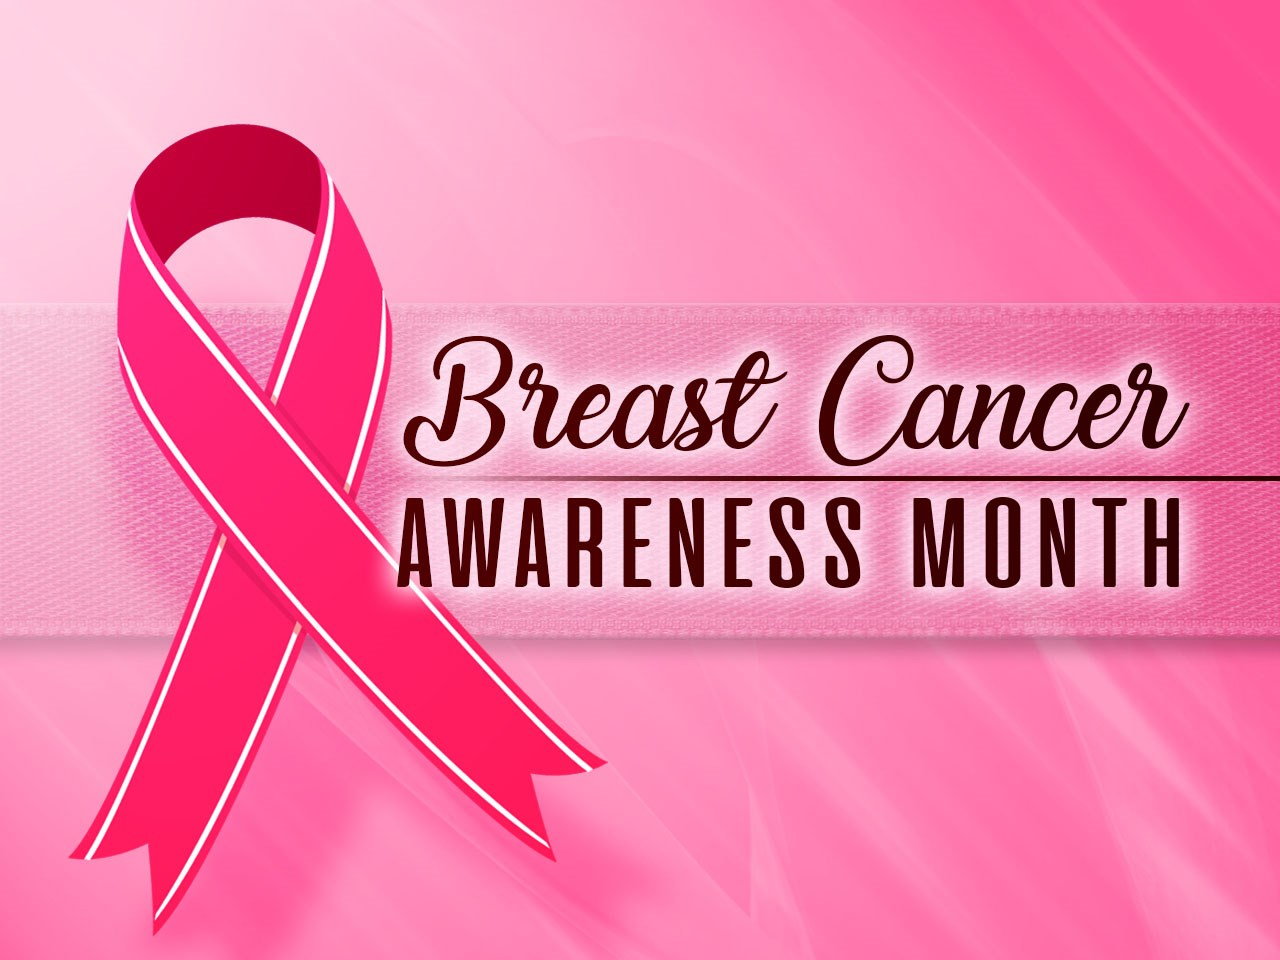 Breast Cancer Care and Awareness with 'The Doctors' Dr. Ordon